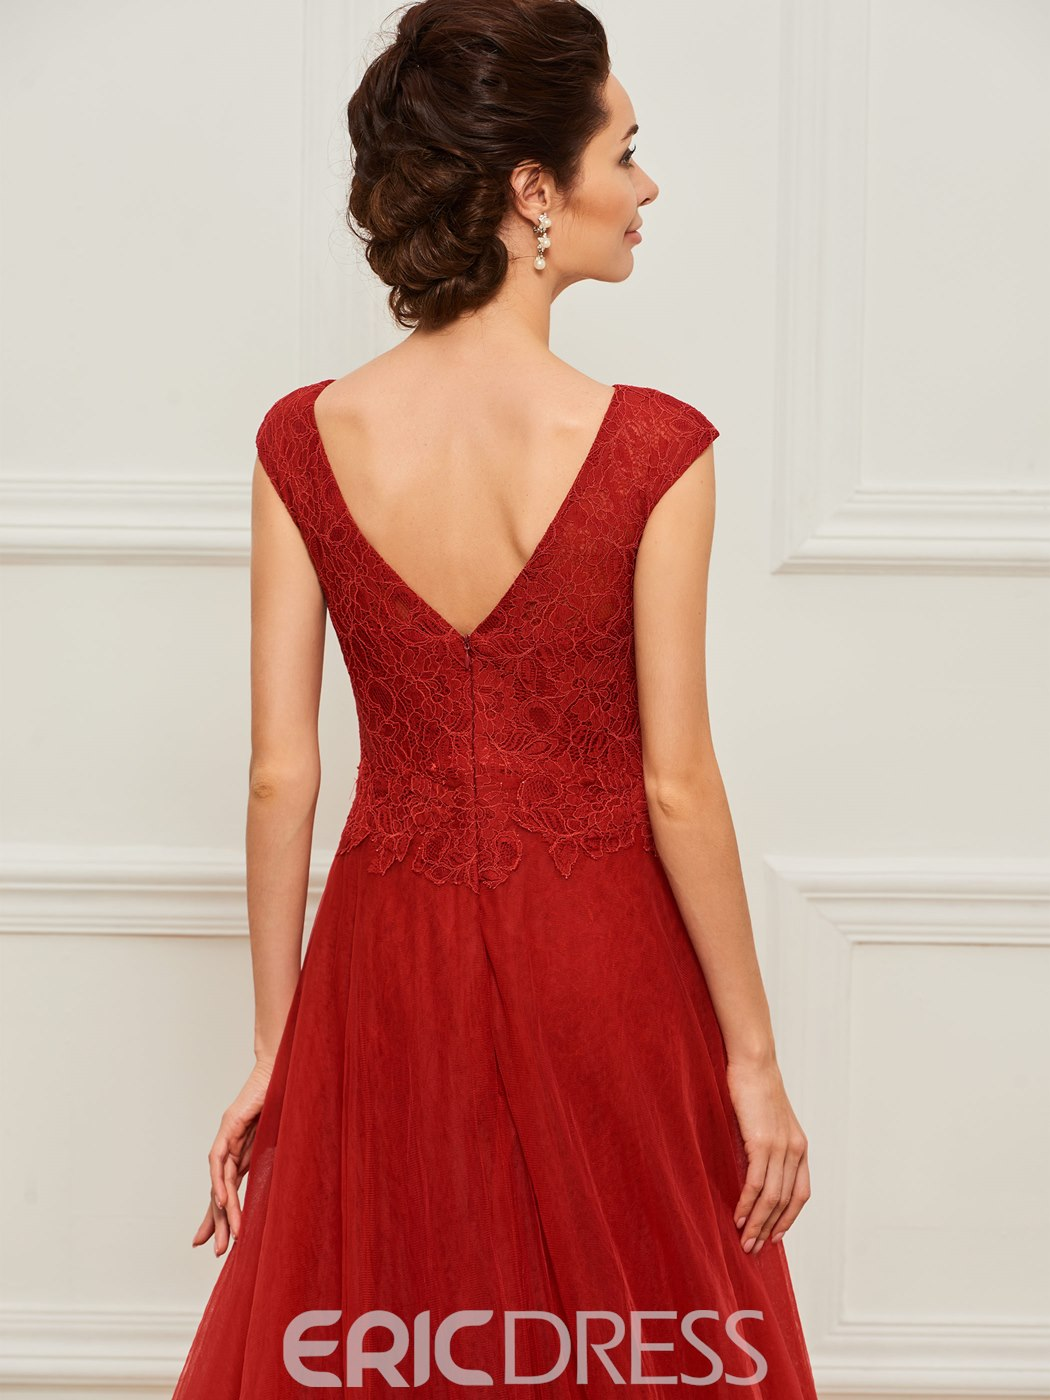 Ericdress Sheath Lace Mother of the Bride Dress with Train